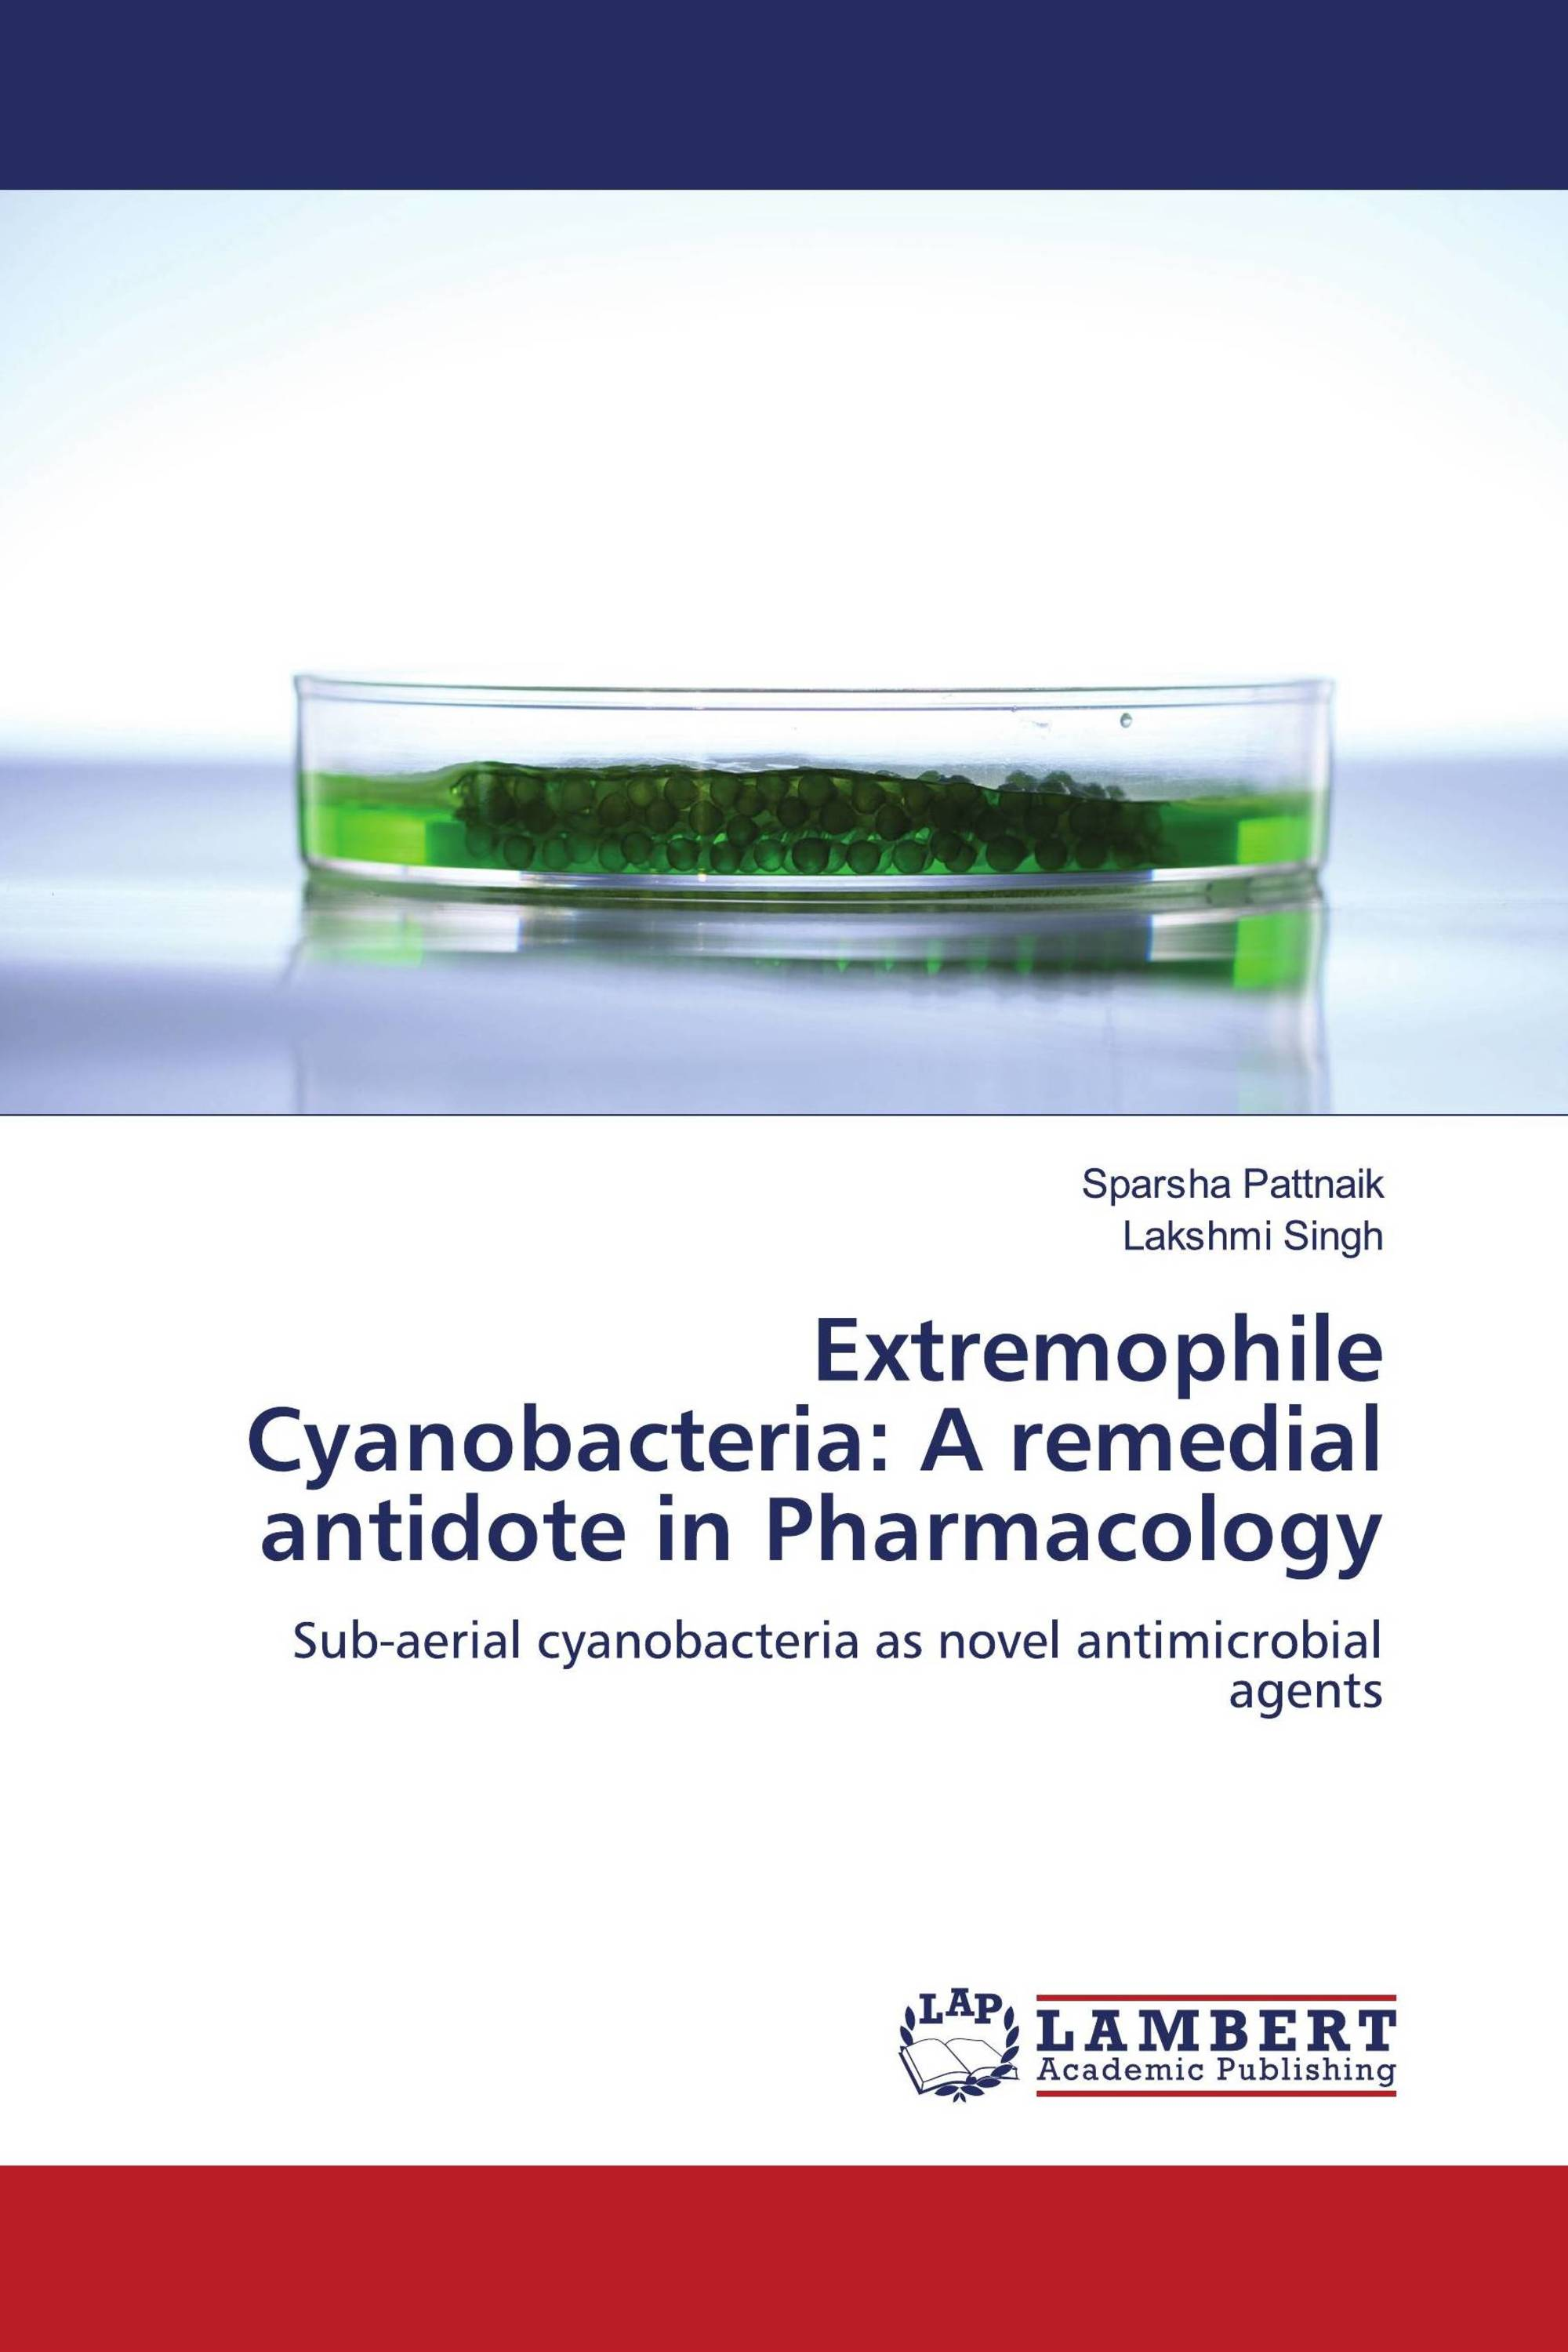 Extremophile Cyanobacteria: A remedial antidote in Pharmacology